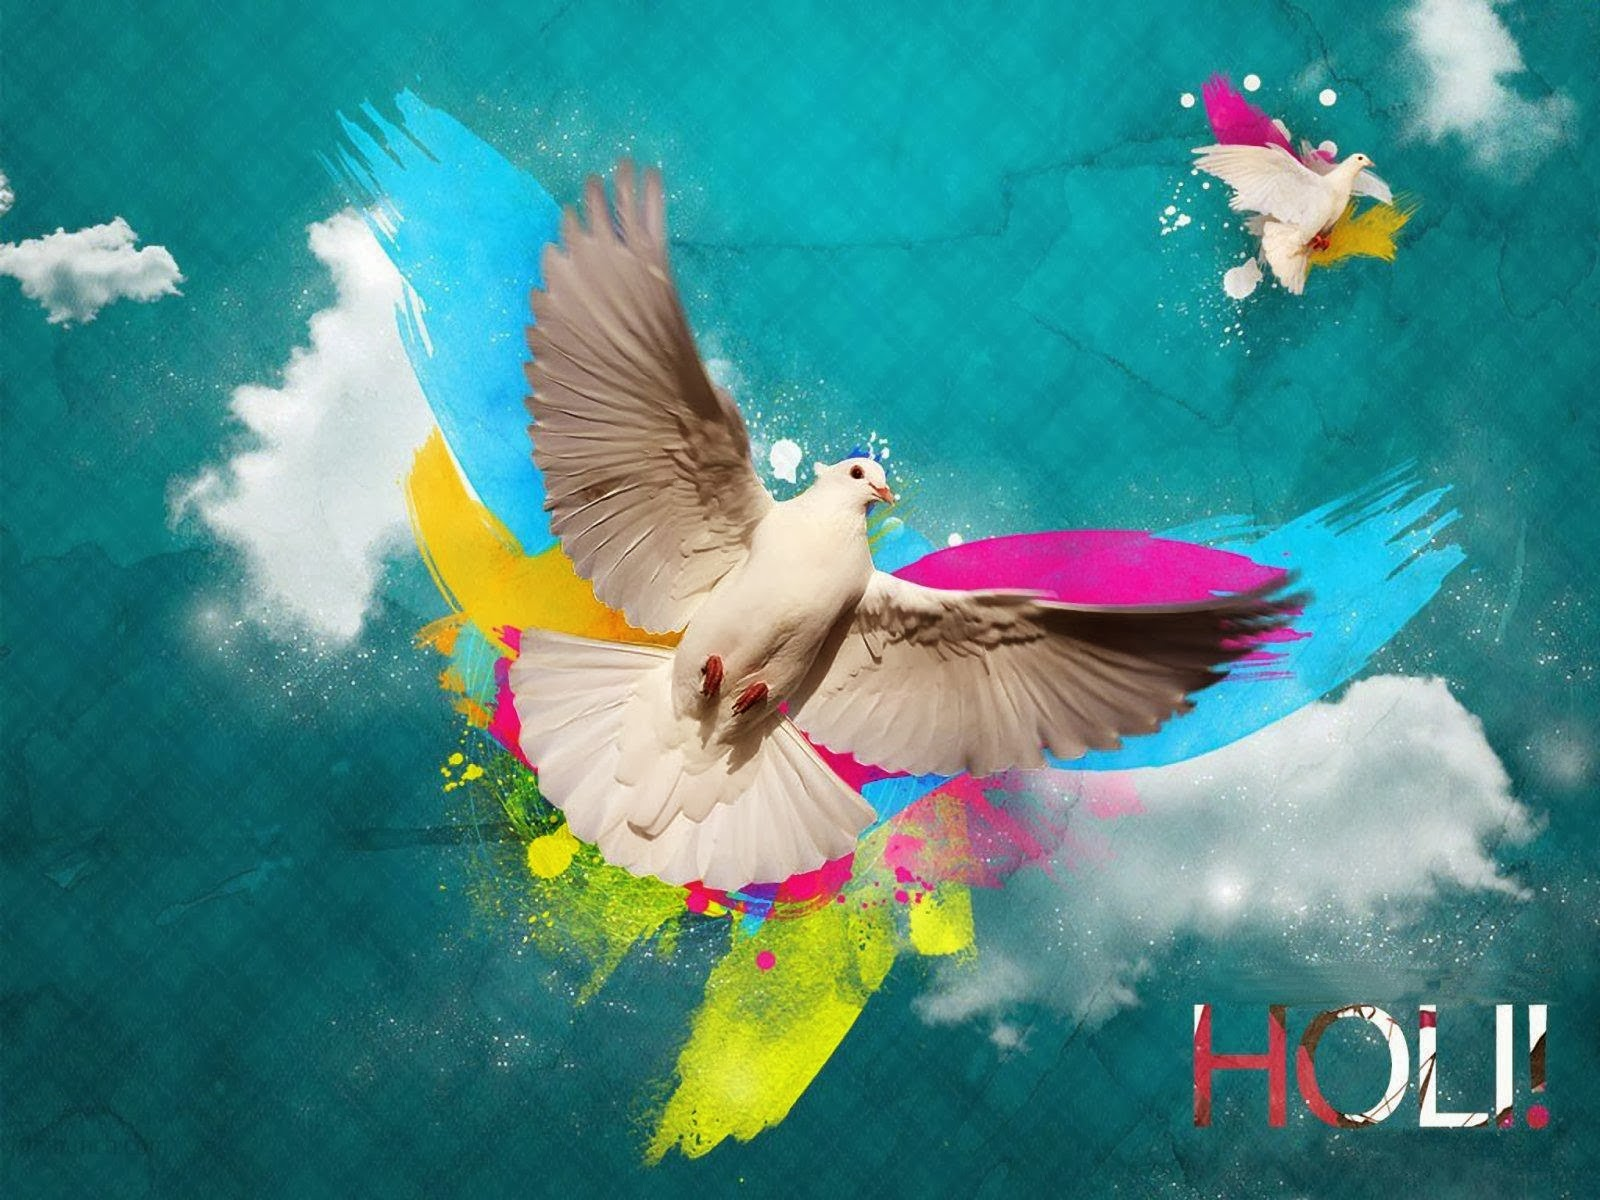 Colourful Happy Holi Wallpapers 2014